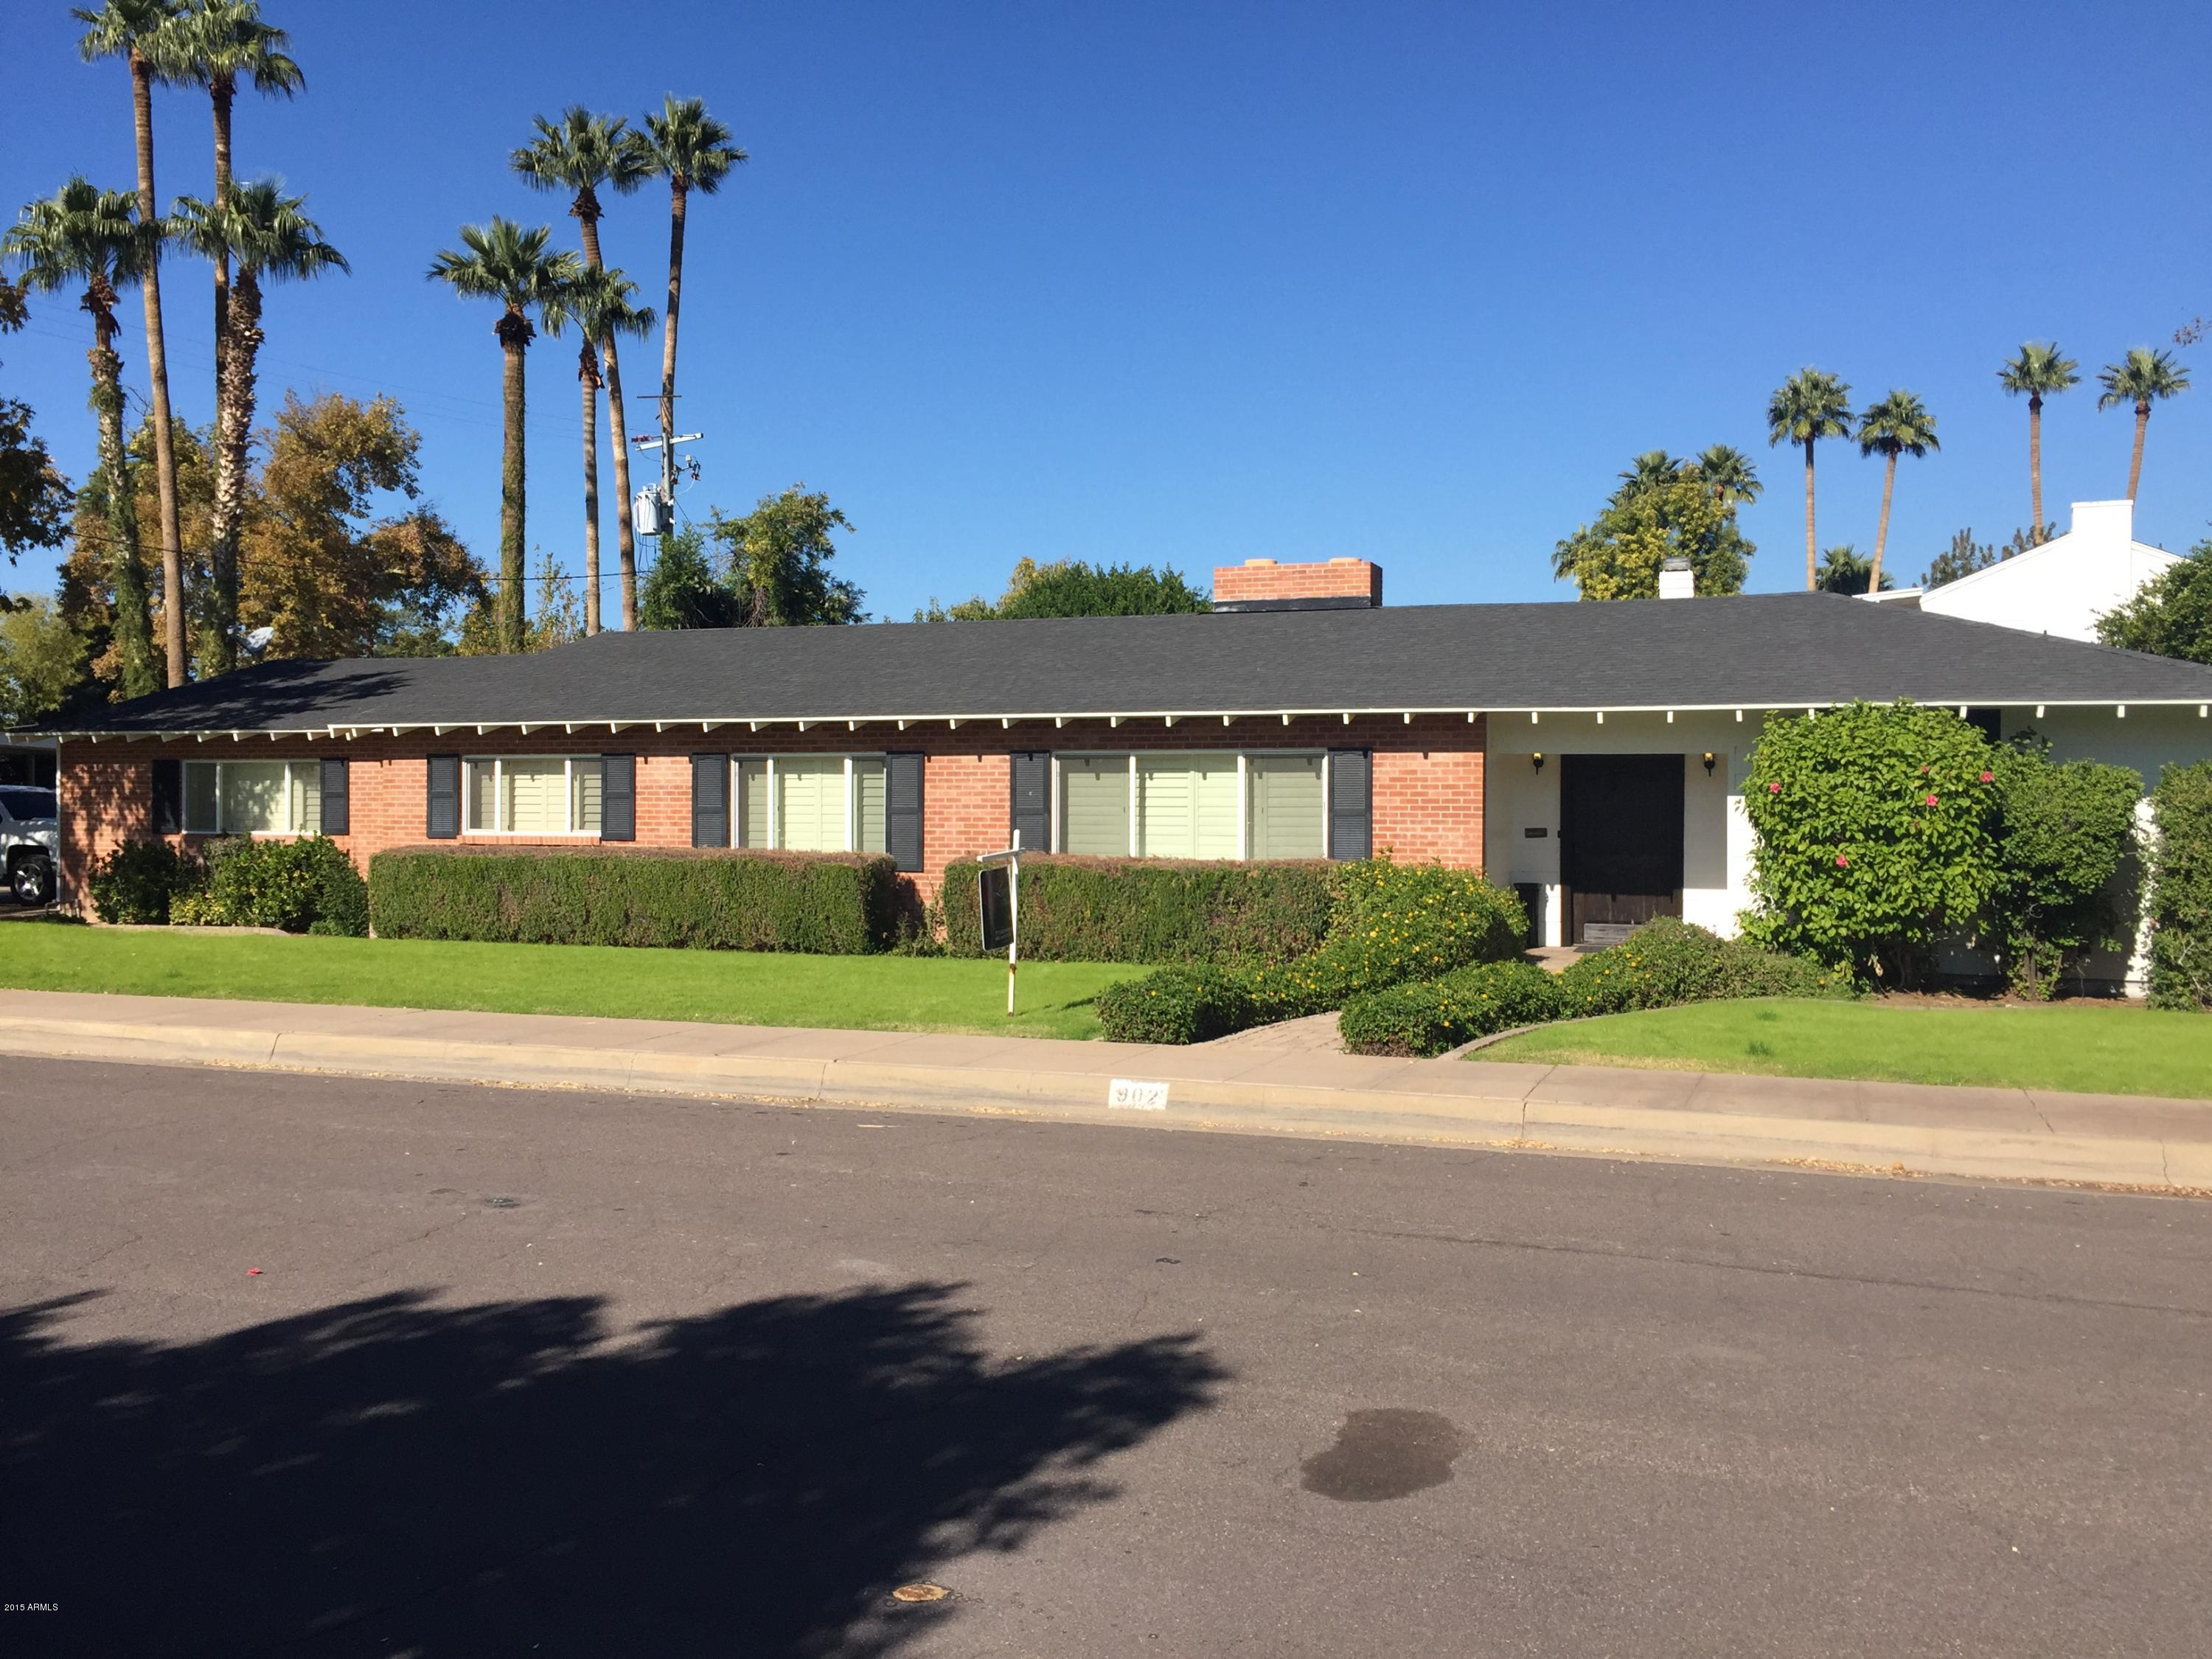 homes for sale in encanto palmcroft historic district historic phoenix real estate